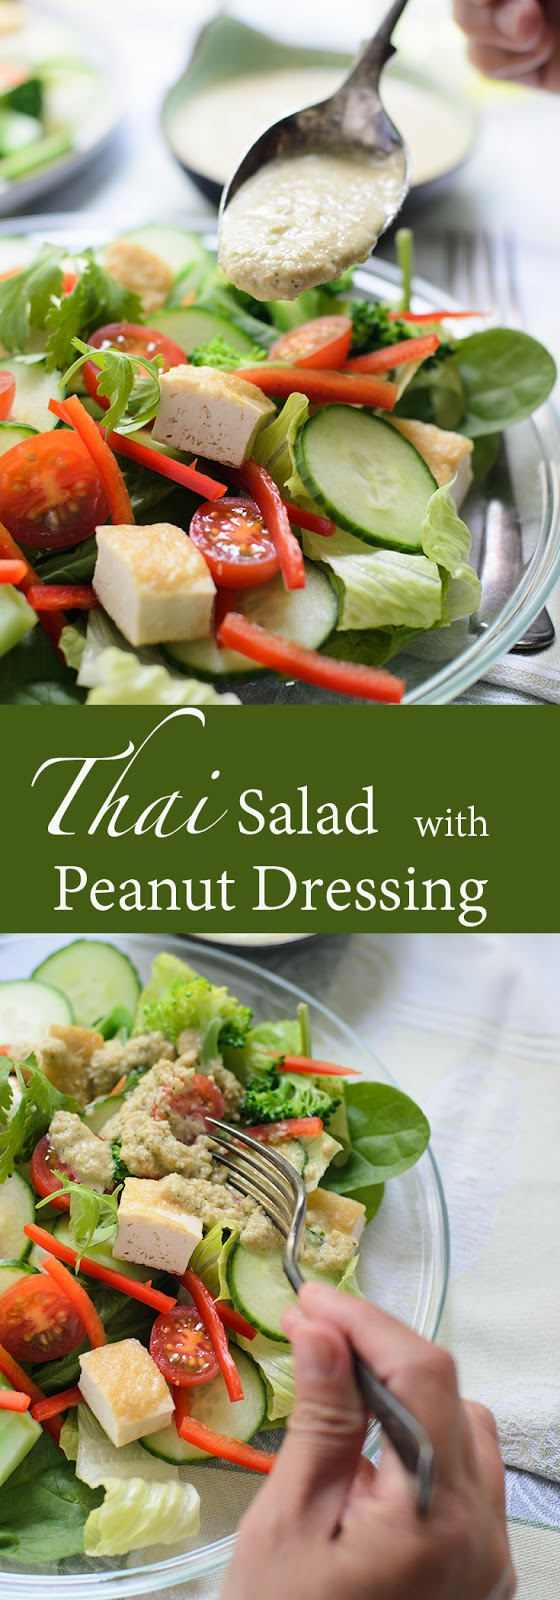 Thai salad with peanut dressing recipe.  Thai salad or Yam Yai as its known to local Thais, consist of mix bag of fresh green, steam vegetable, beancurd and egg as the source of protein.  Serve with creamy rich peanut dressings.